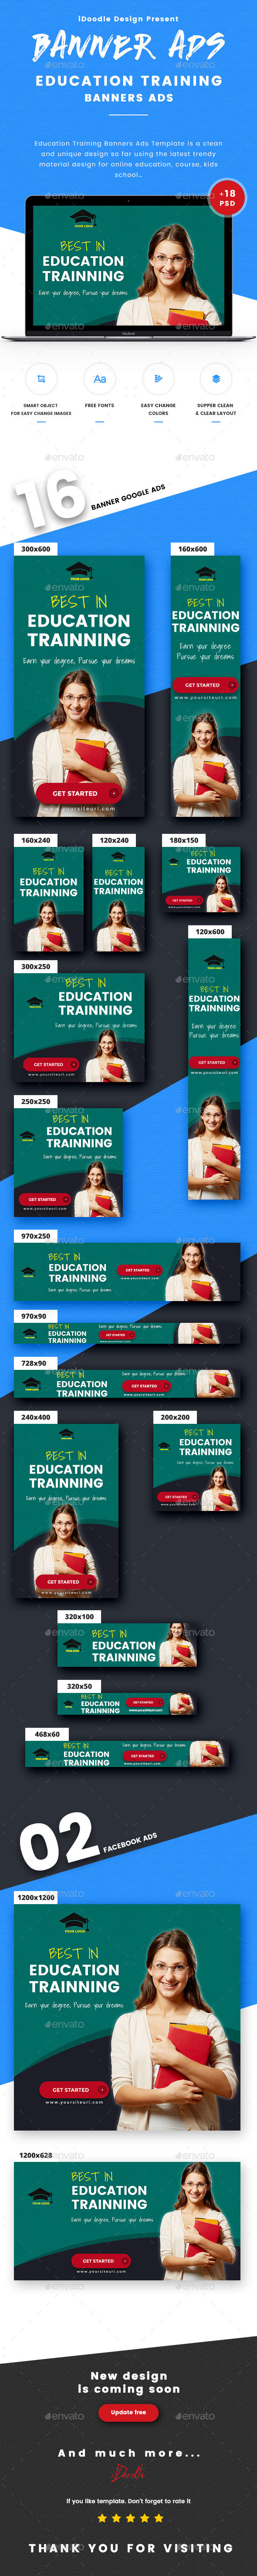 Education Training Banners Ads - Banners & Ads Web Elements